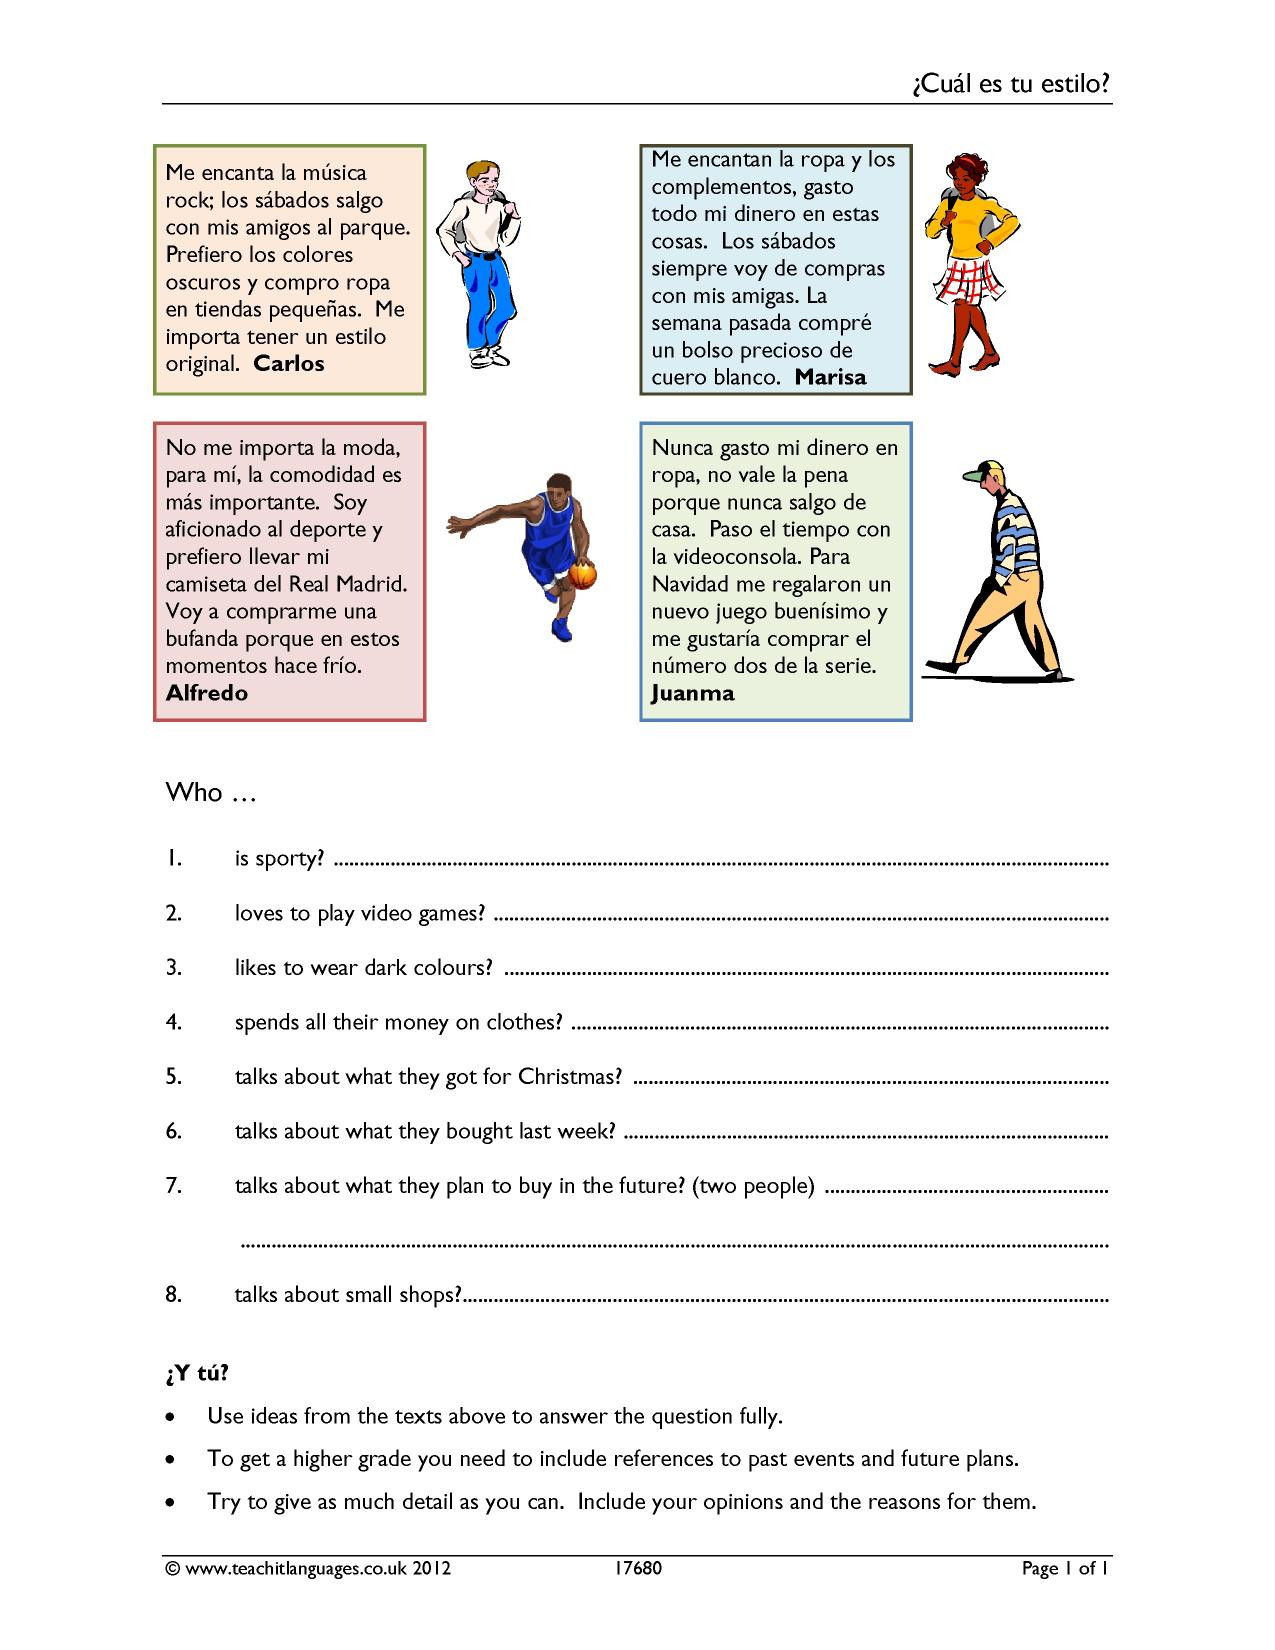 Spanish Reading Comprehension Worksheets Ks4 Spanish Reading